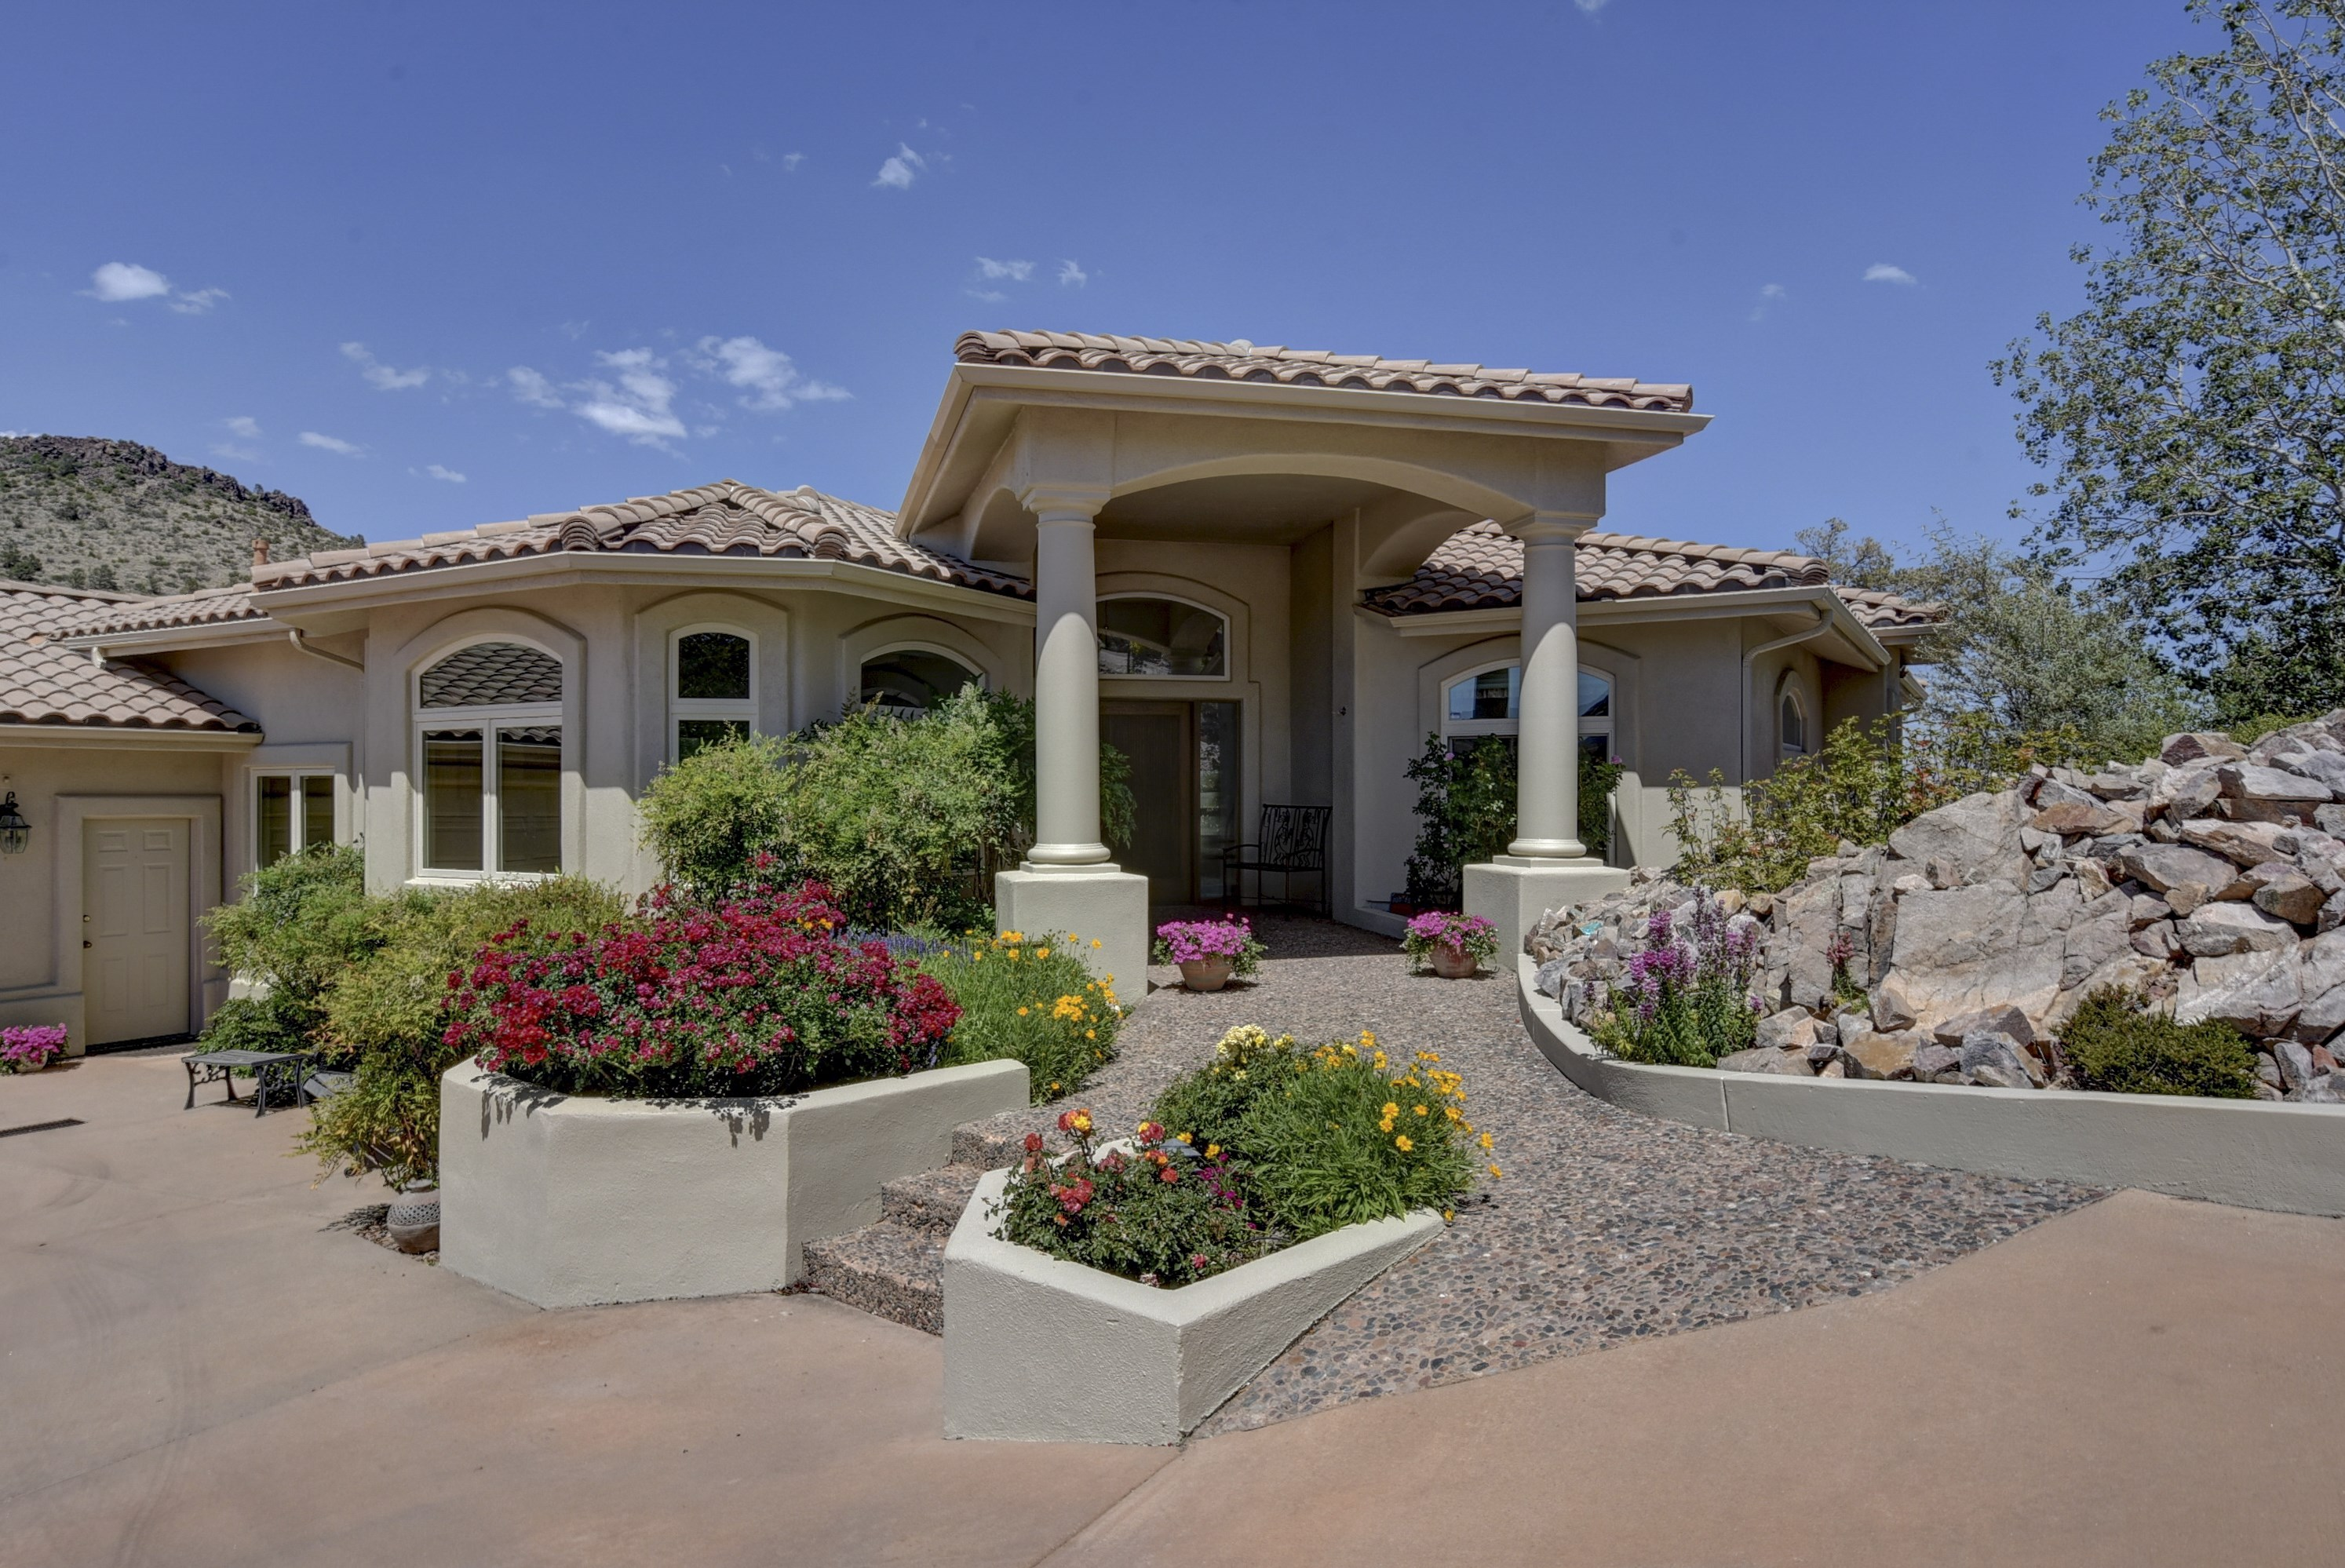 100 113 Best Executive Homes Images Best 25 Luxury  : 1158678222017111306PM80604 from 45.76.23.192 size 2988 x 1998 jpeg 1207kB